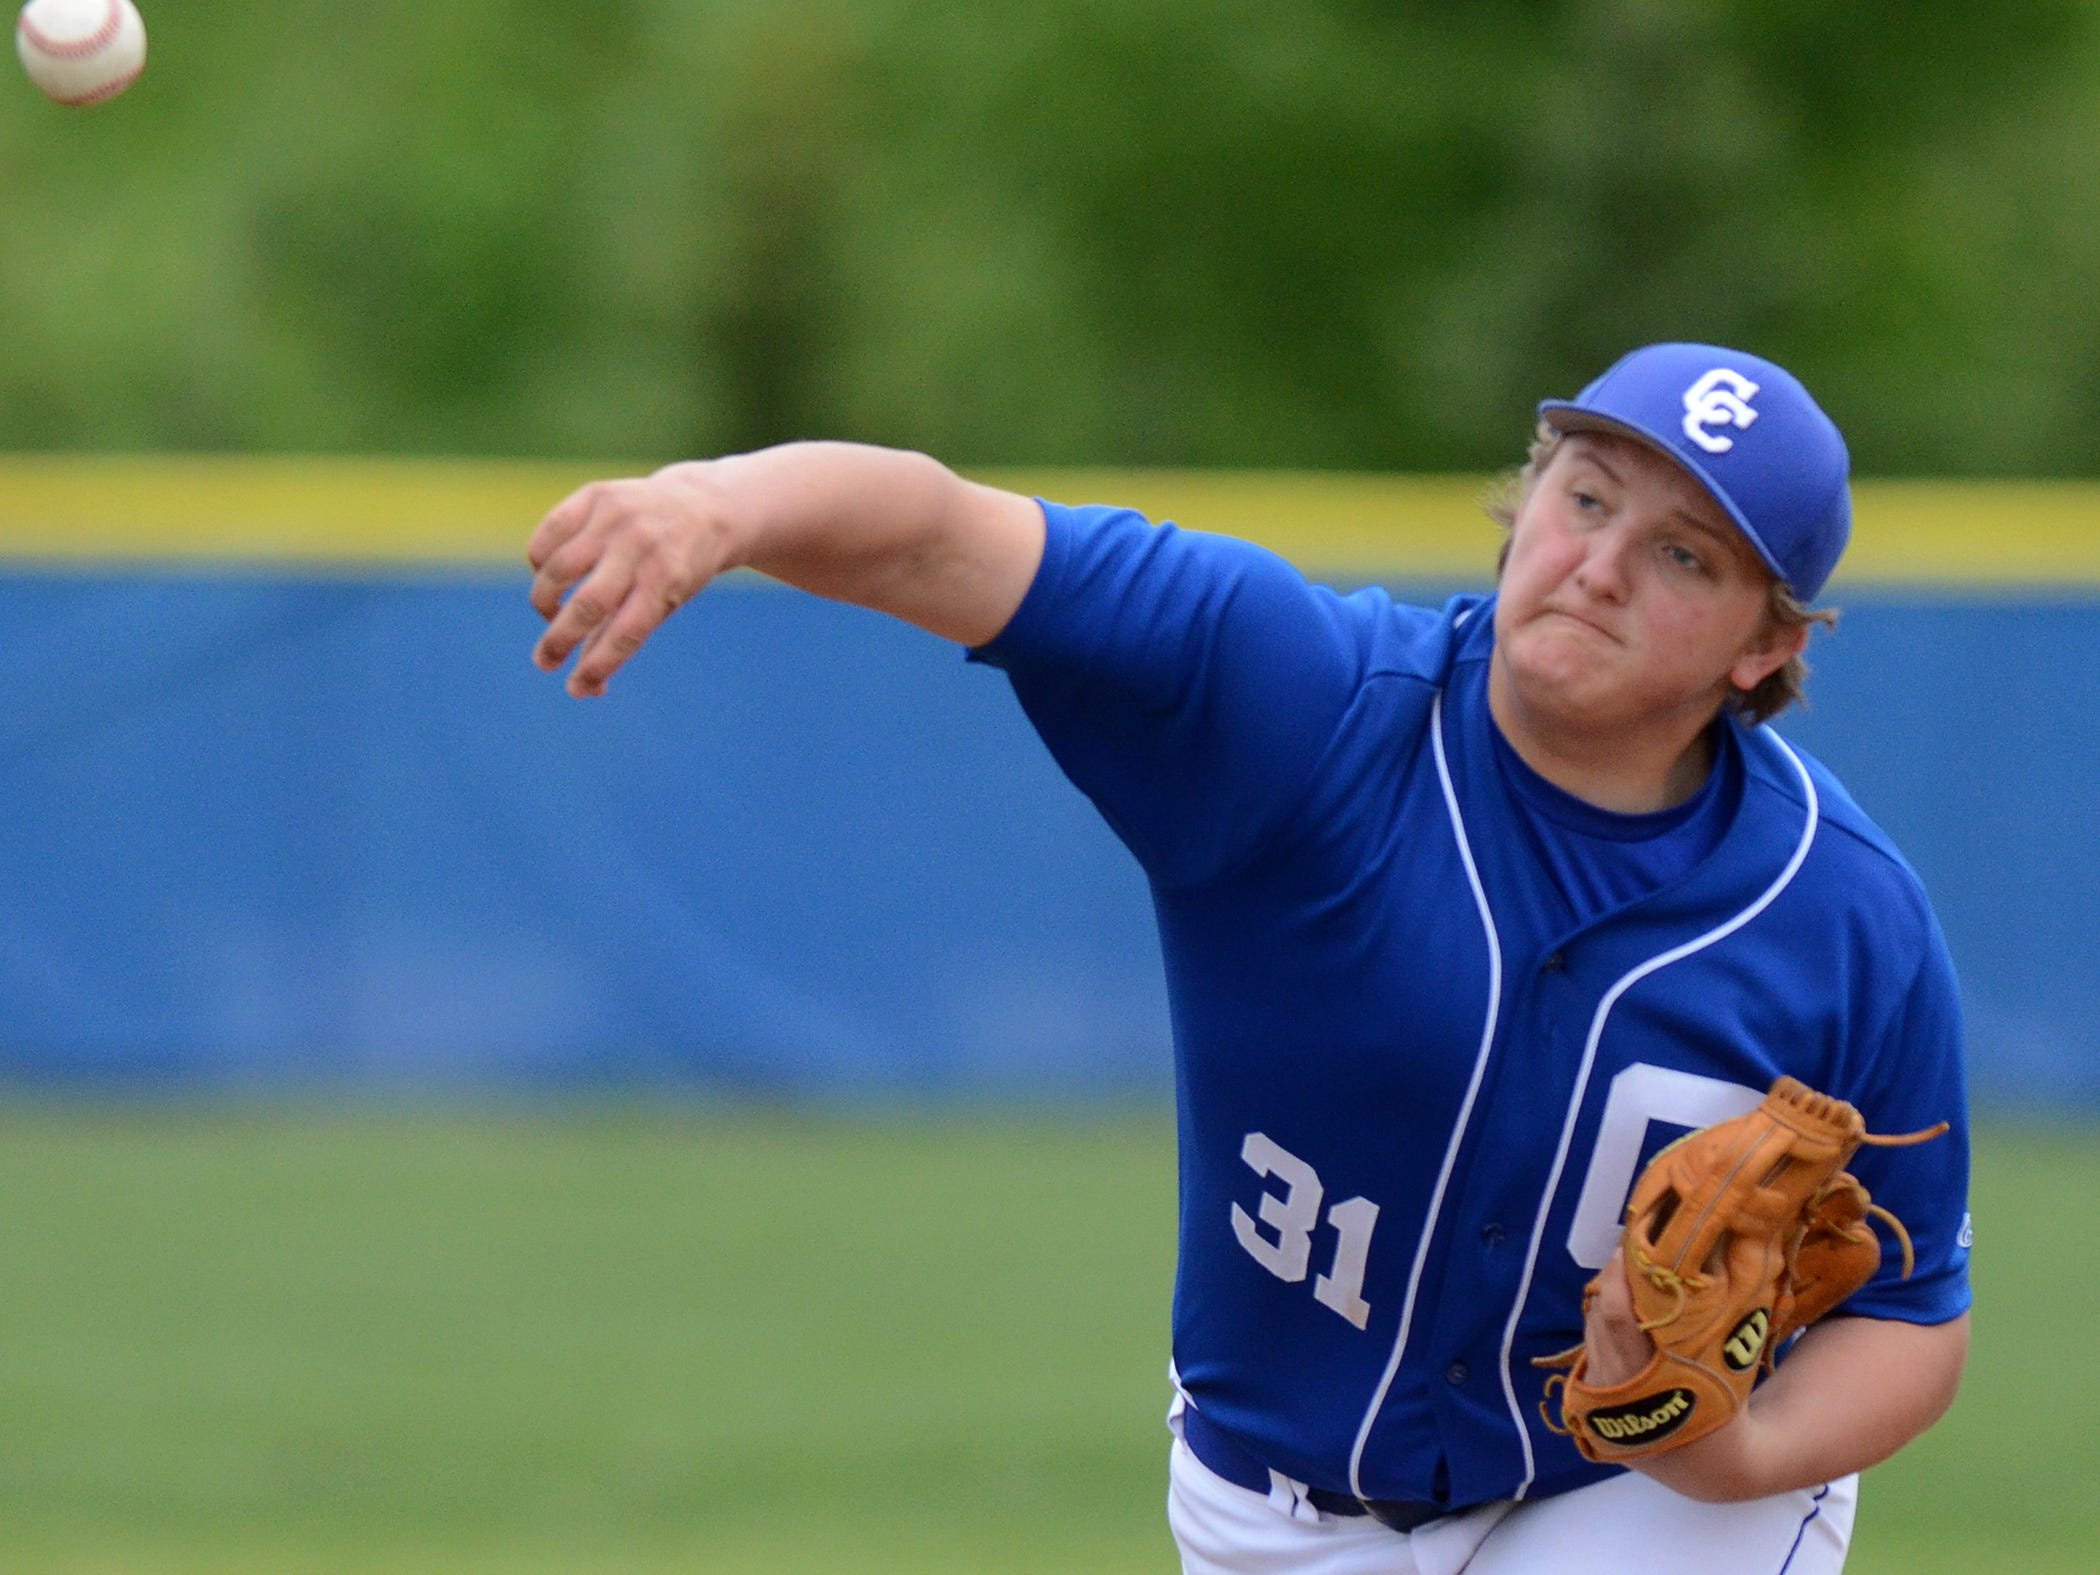 Catholic Central's Sam Hollenbeck earned the victory in Game One allowing just one run in 6.1 innings in a 3-1 win over South Lyon.